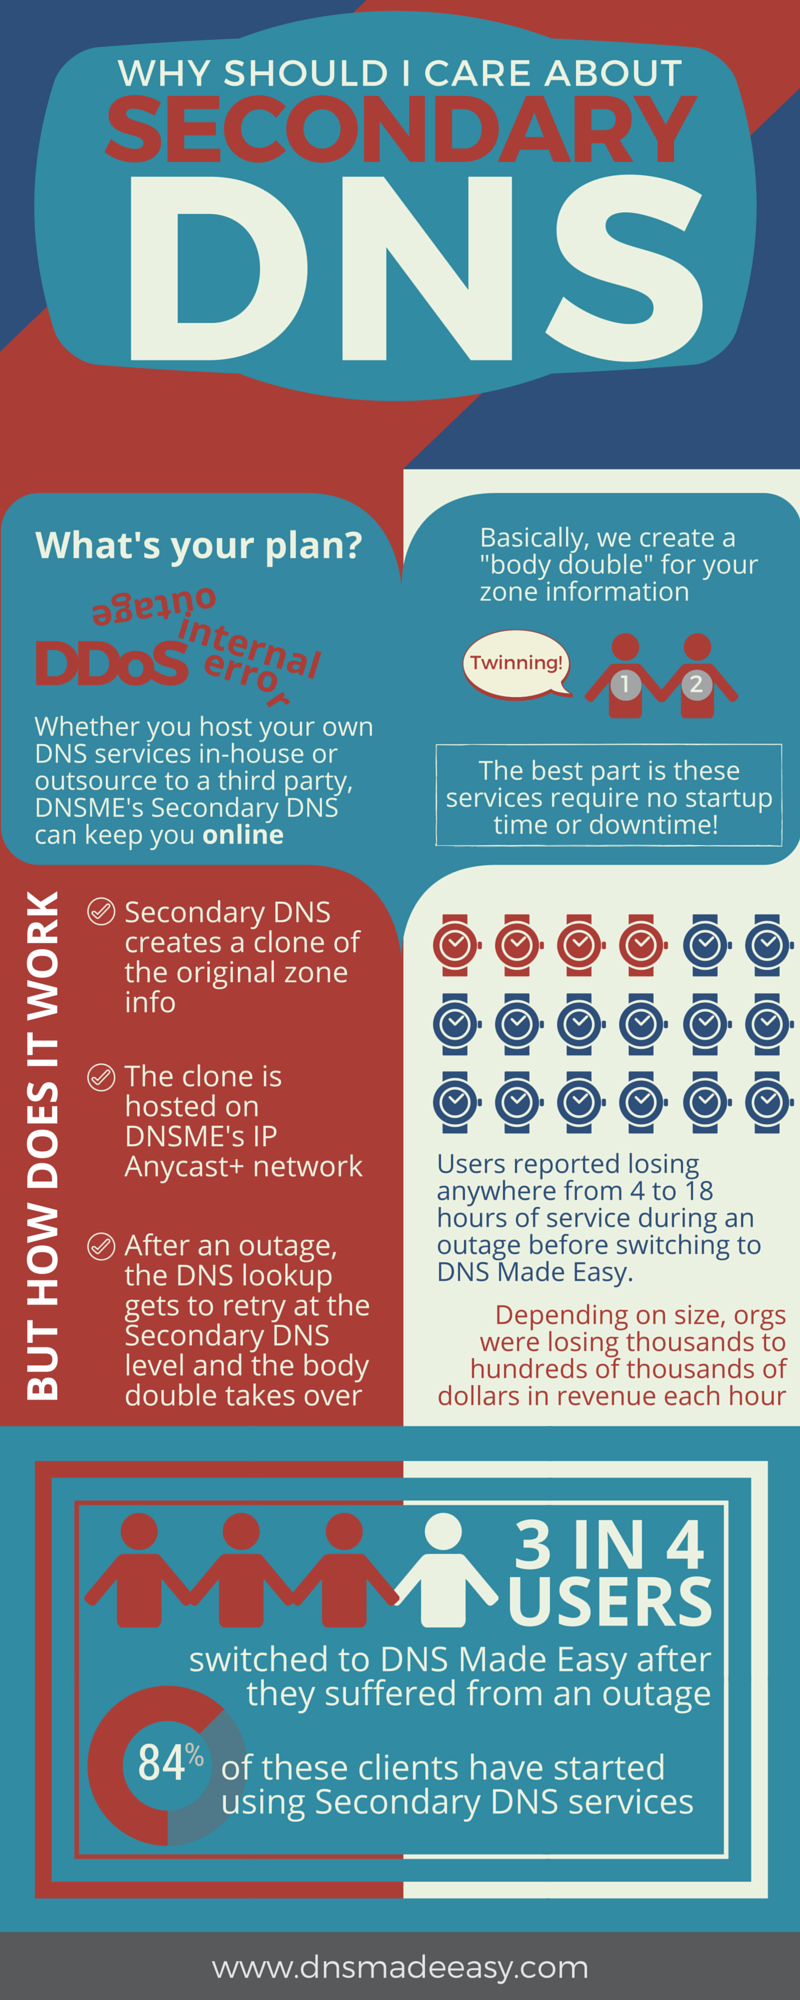 Secondary DNS